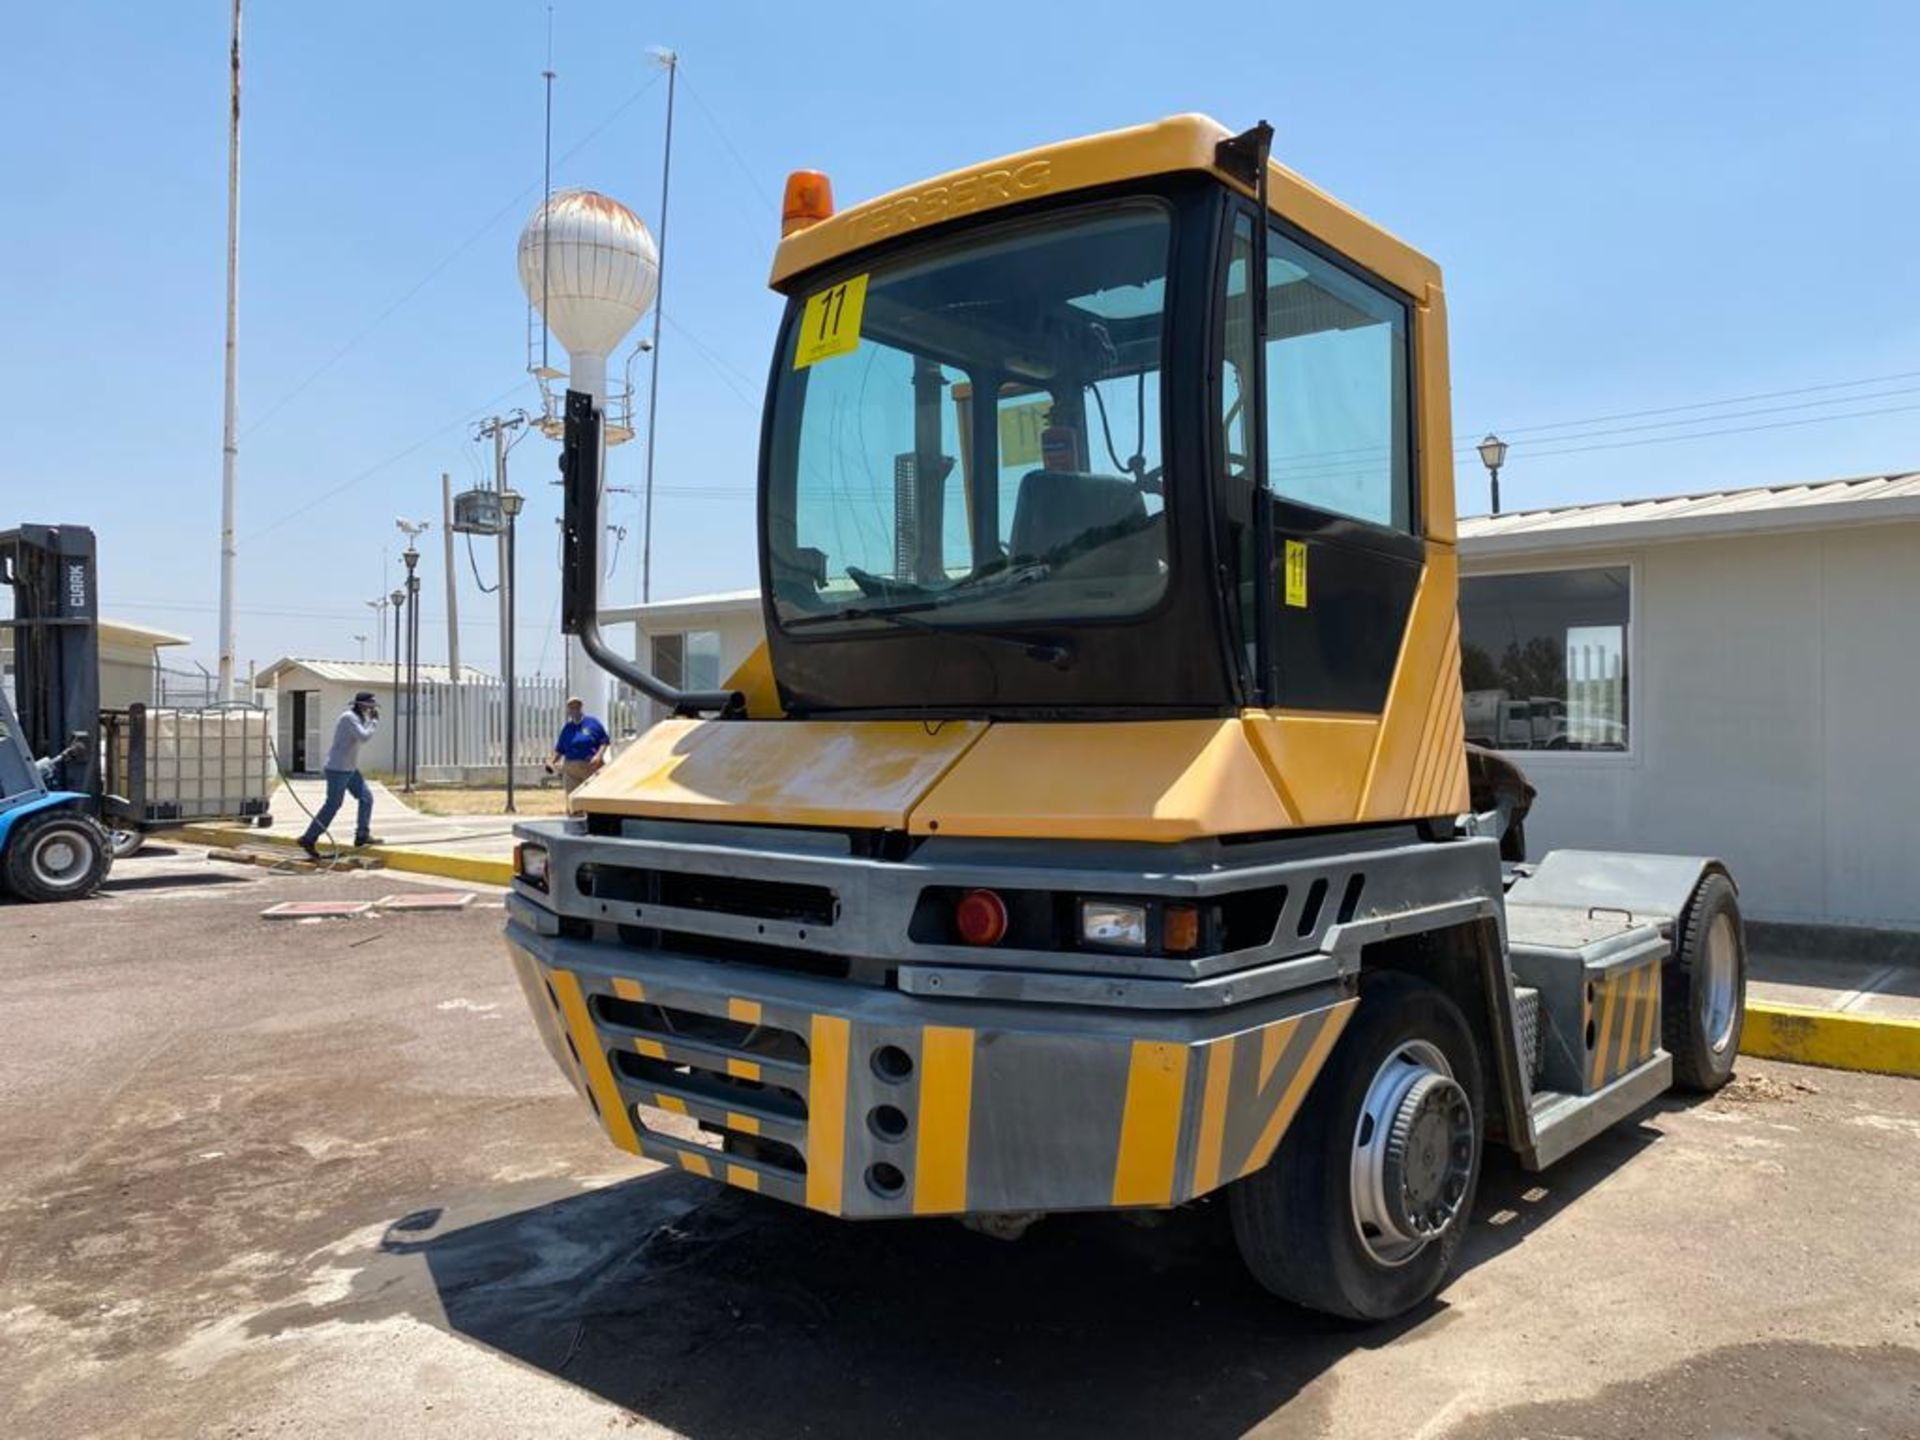 Terberg Capacity 2002 Terminal Tractor, automatic transmission, with Volvo motor - Image 5 of 57